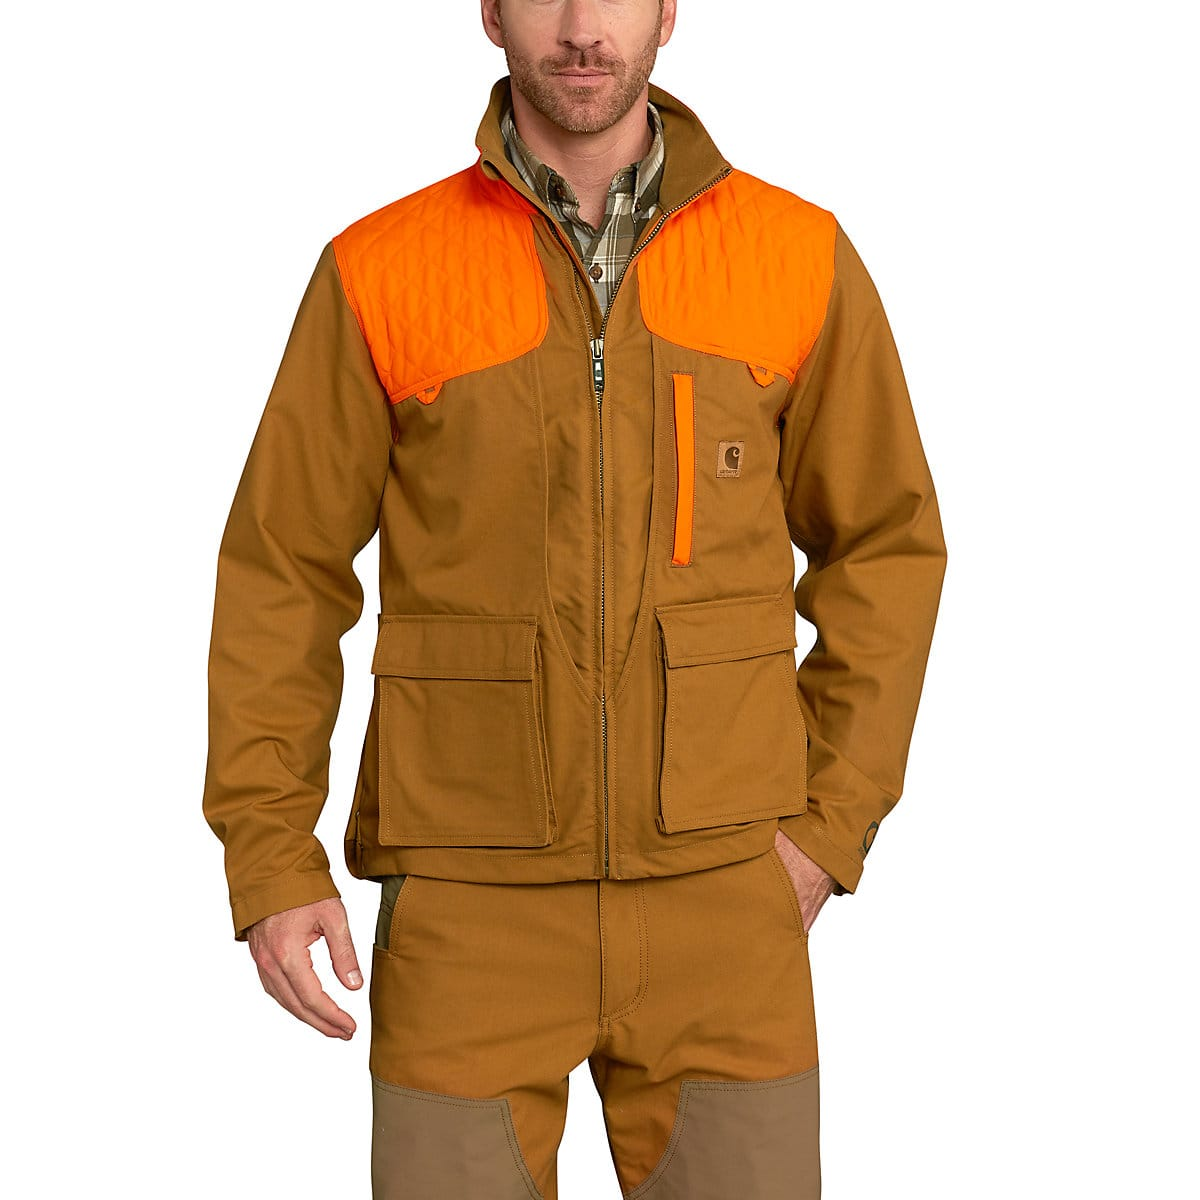 a0a400e75fb Men s Upland Field Jacket 102800